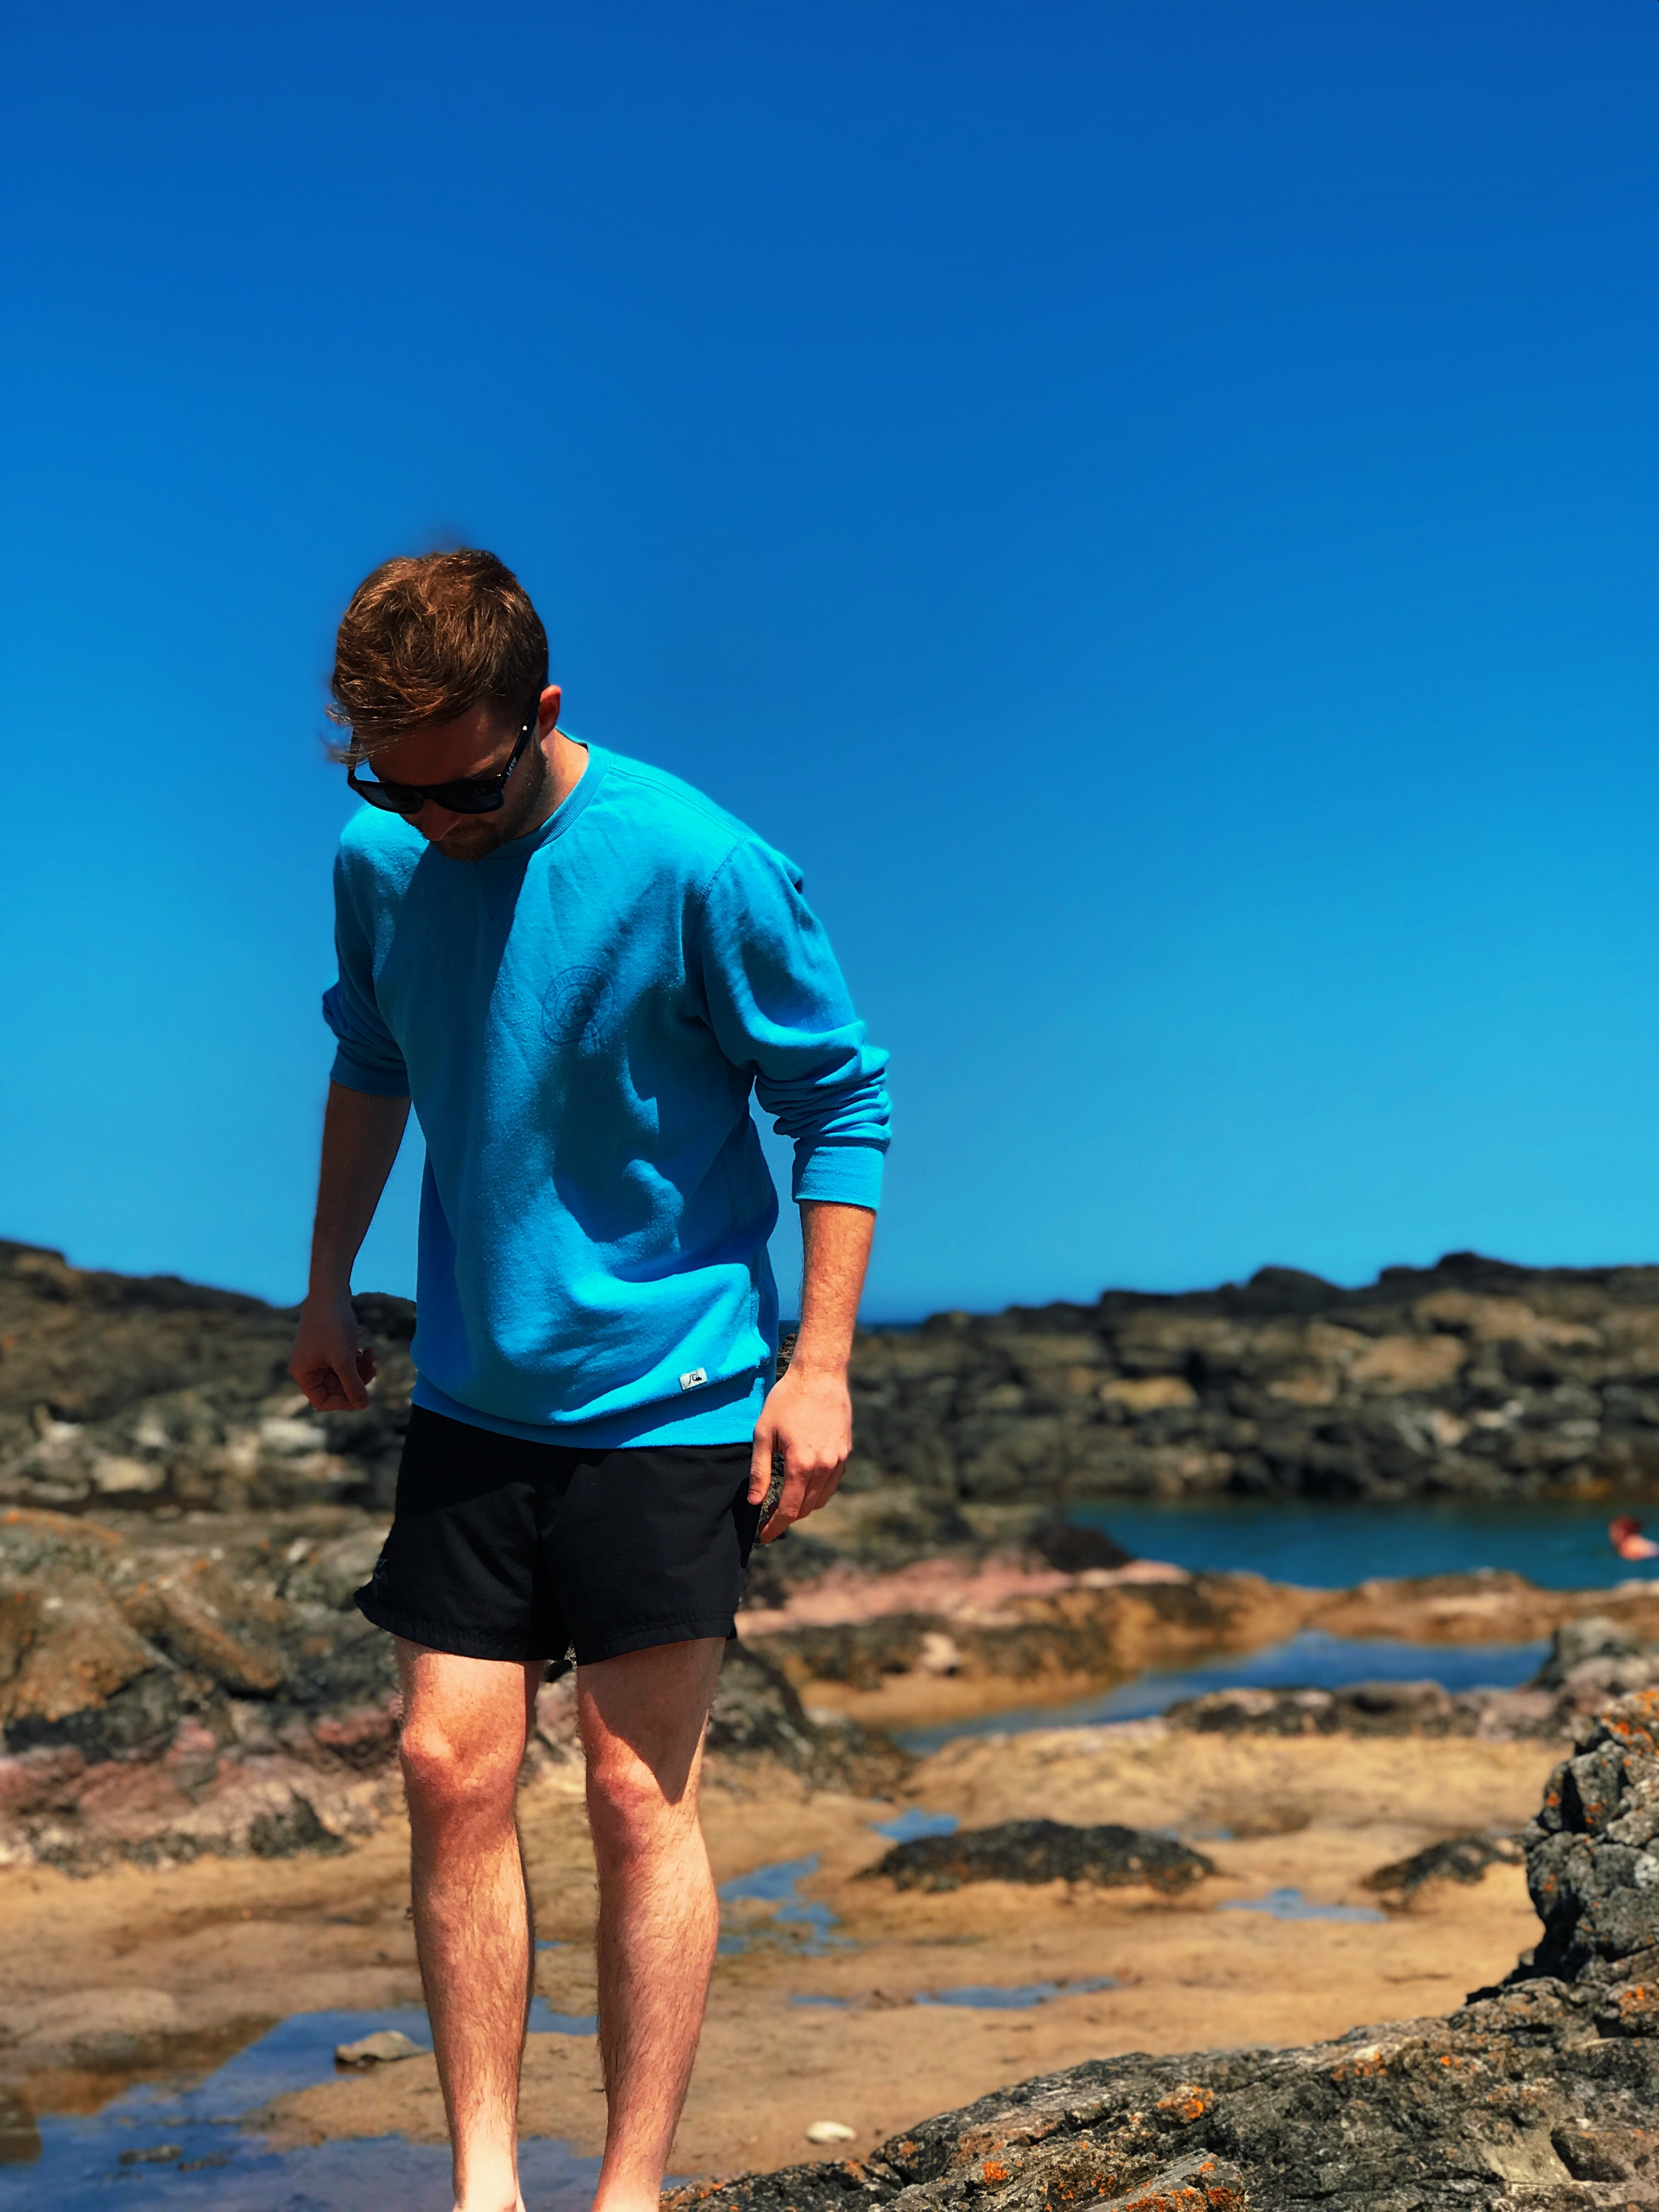 man wearing blue shirt standing on gray rock at daytime